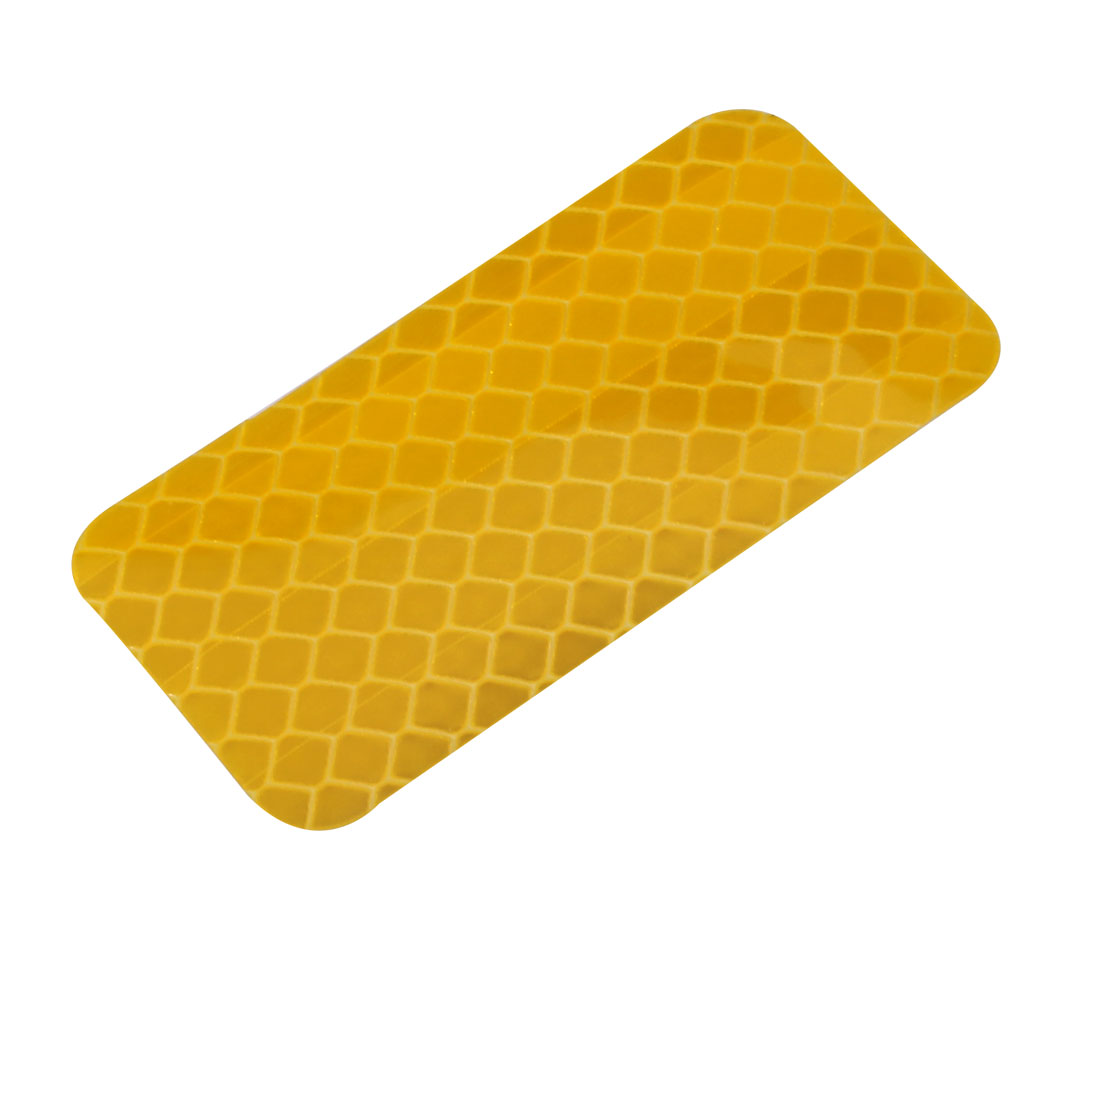 Honeycomb Reflective Warning Tape Film Sticker Yellow 30mm Width 60mm Length